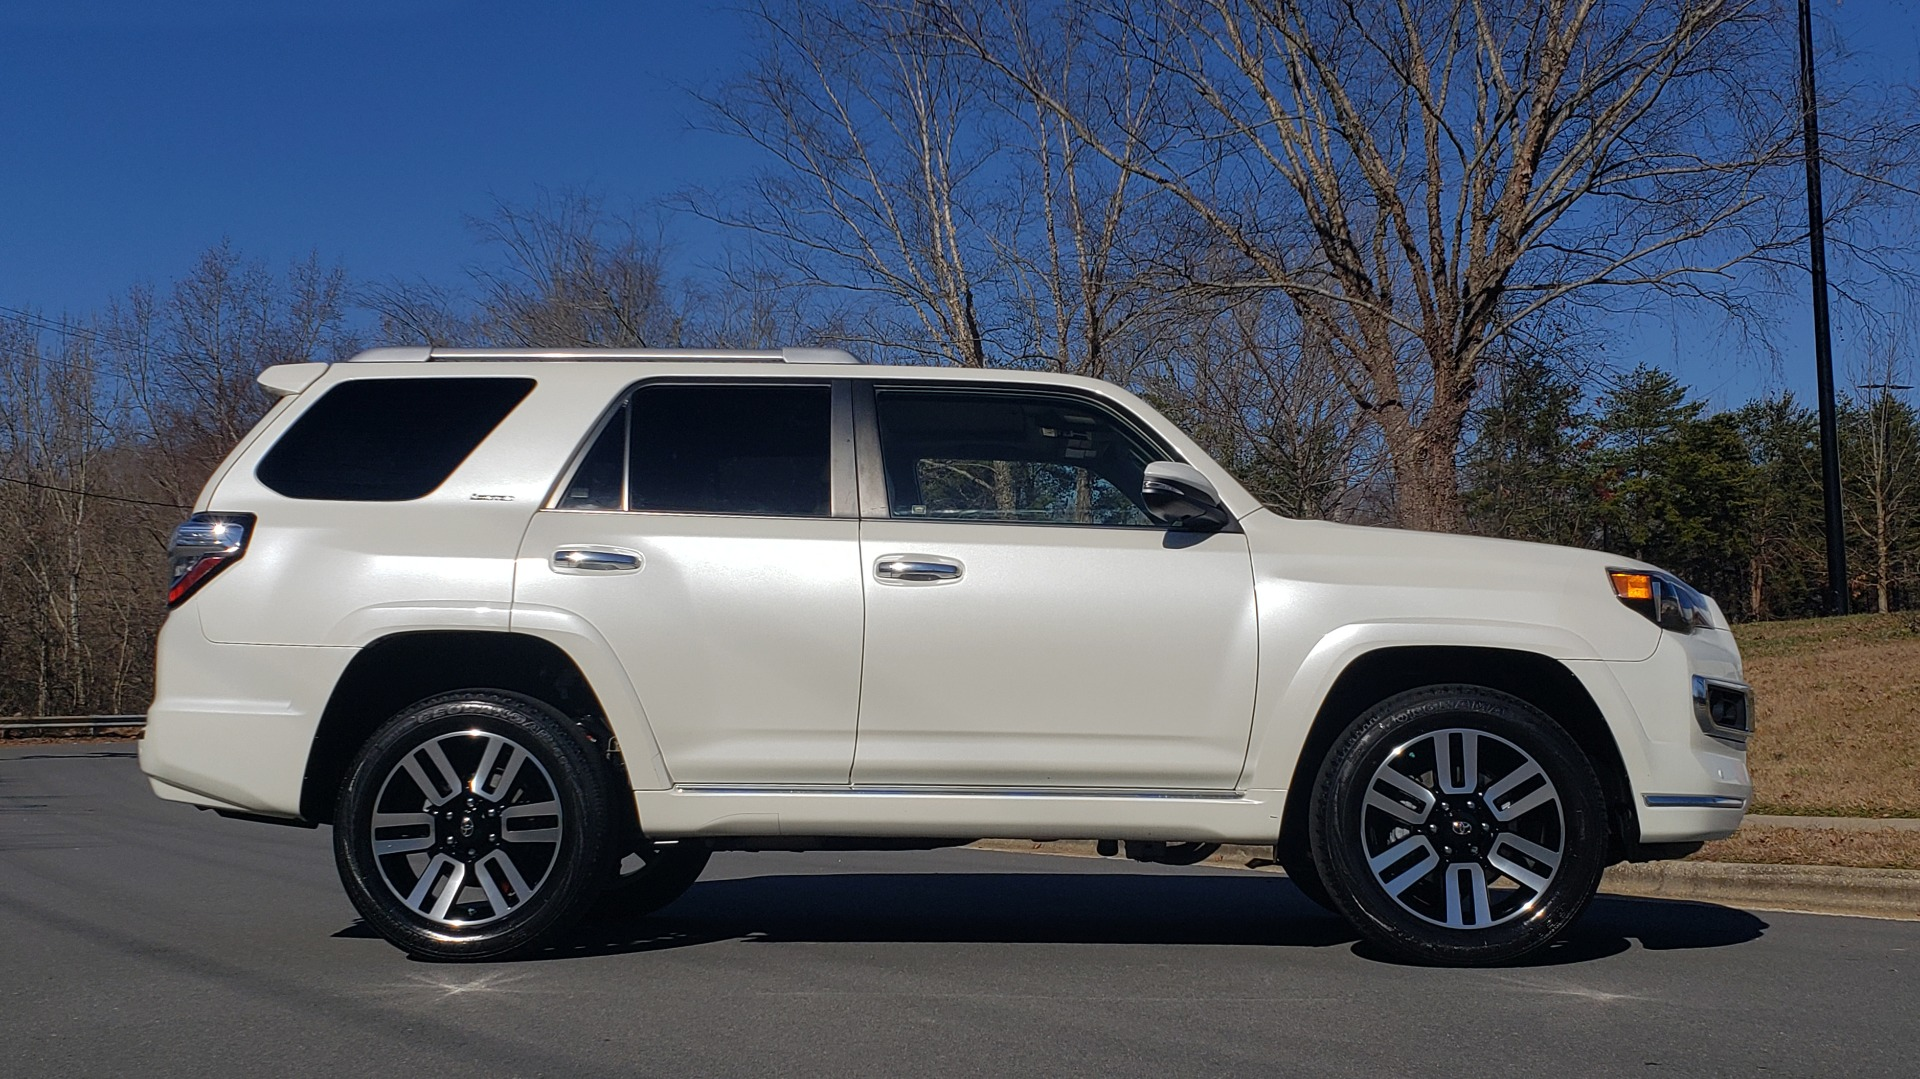 Used 2018 Toyota 4RUNNER LIMITED 4X4 / 4.0L V6 / AUTO / NAV / SUNROOF / JBL AUDIO / REARVIEW for sale Sold at Formula Imports in Charlotte NC 28227 5